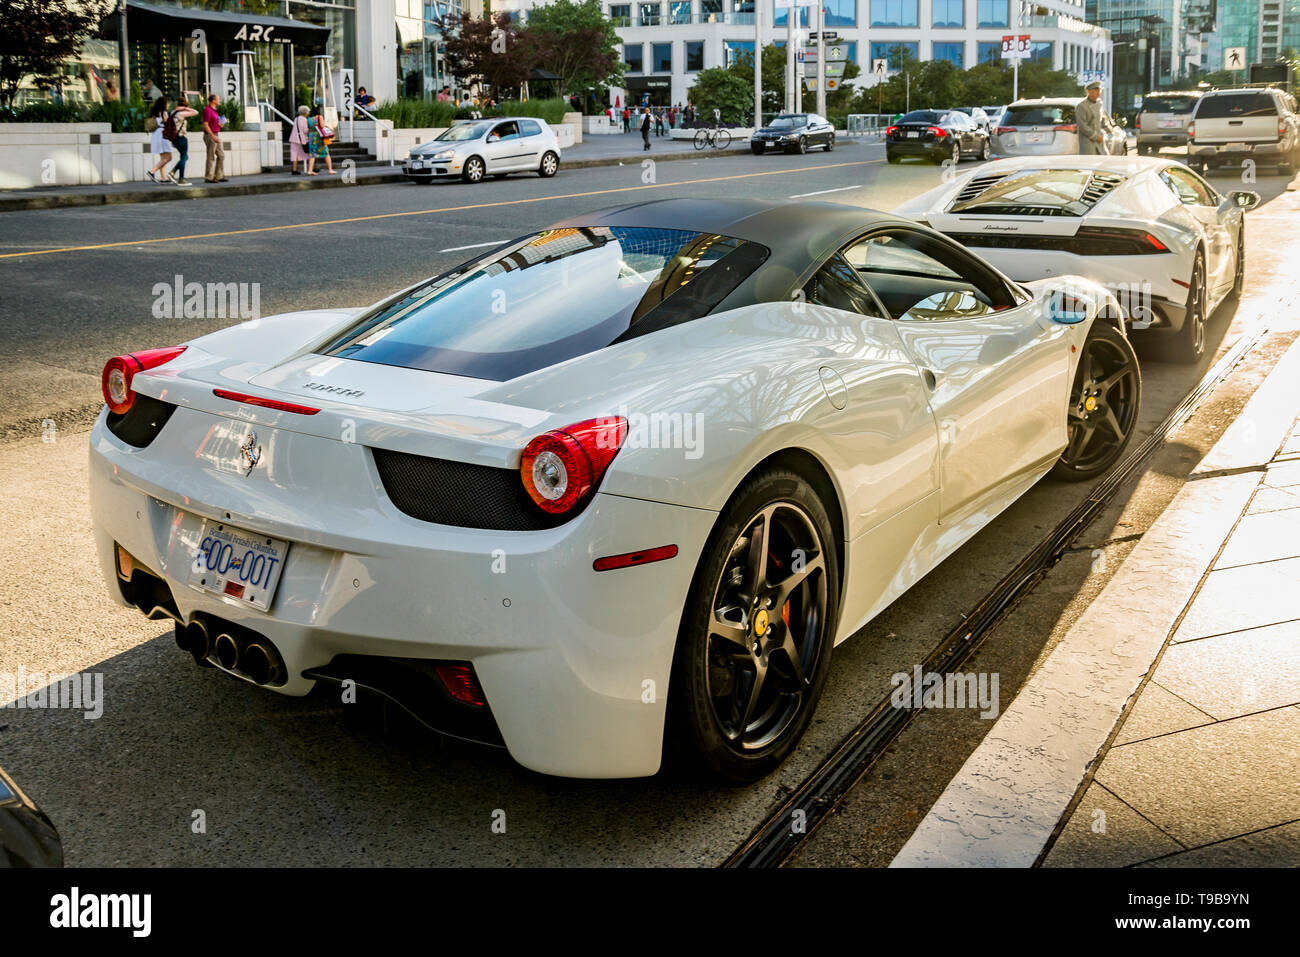 Luxury Cars Ferrari And Lamborghini Parked Downtown Vancouver British Columbia Canada Licence Plate Digitally Altered Stock Photo Alamy